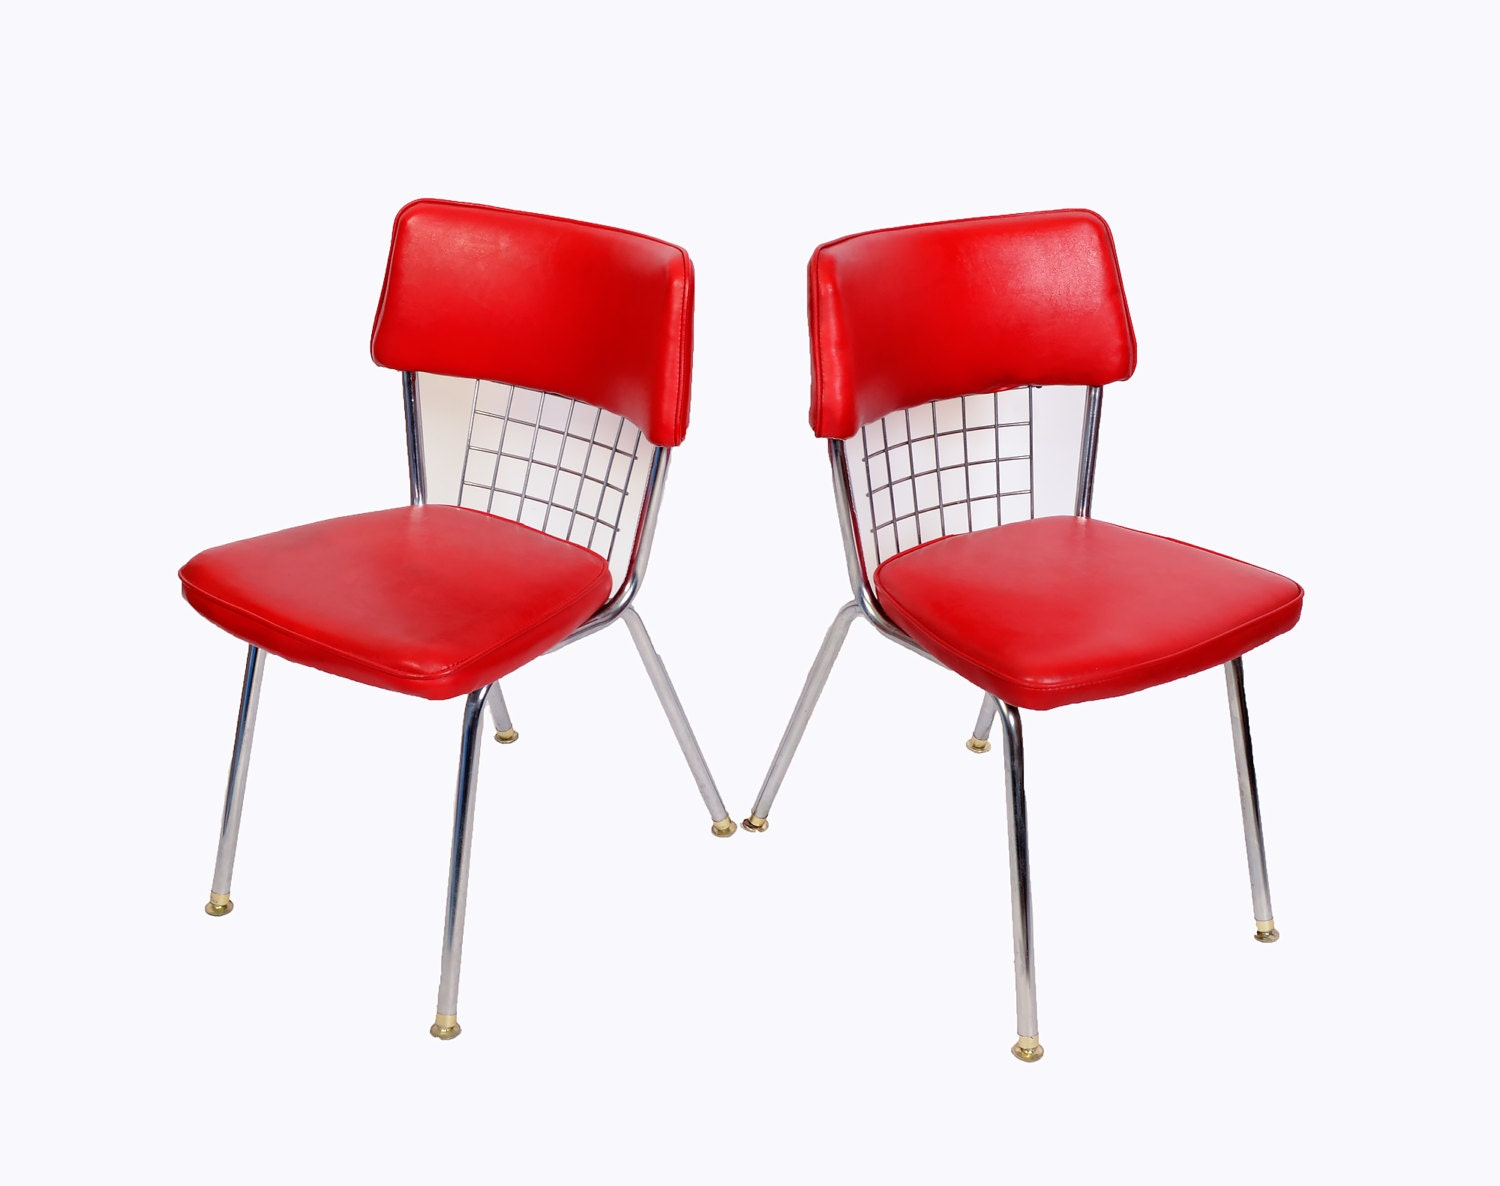 Chrome dinette chairs set of 6 red seats howell modern metal for Modern metal chairs